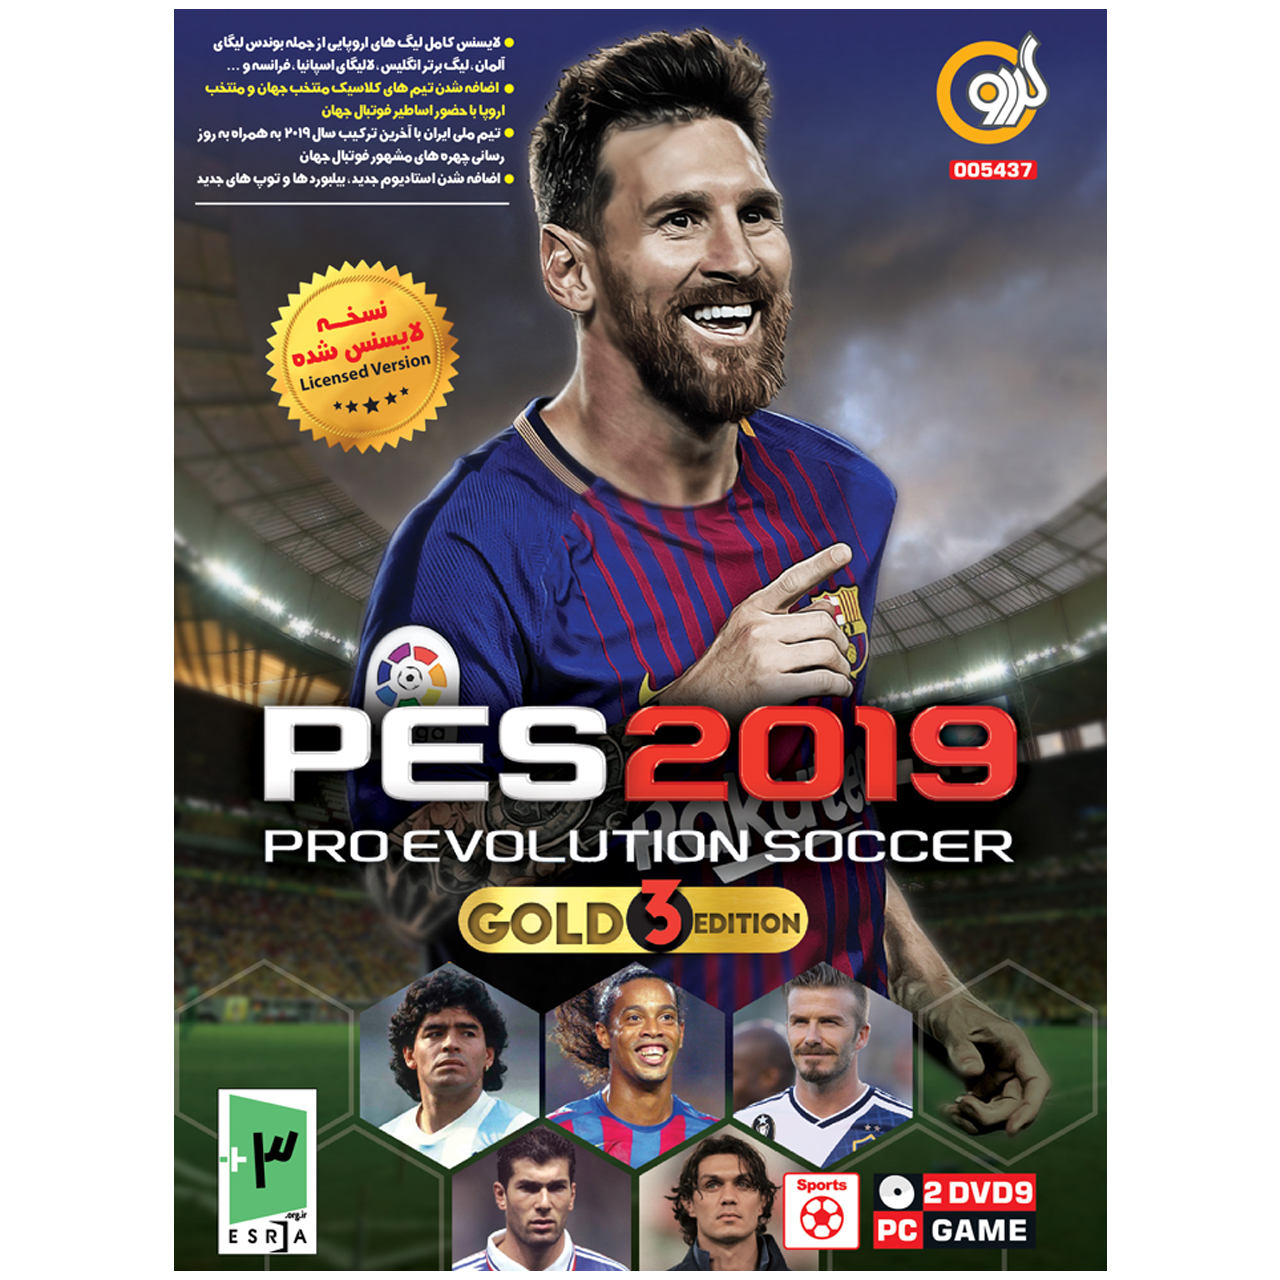 بازی گردو  PES 2019 Pro Evolution Soccer Gold 3 Edition مخصوص PC